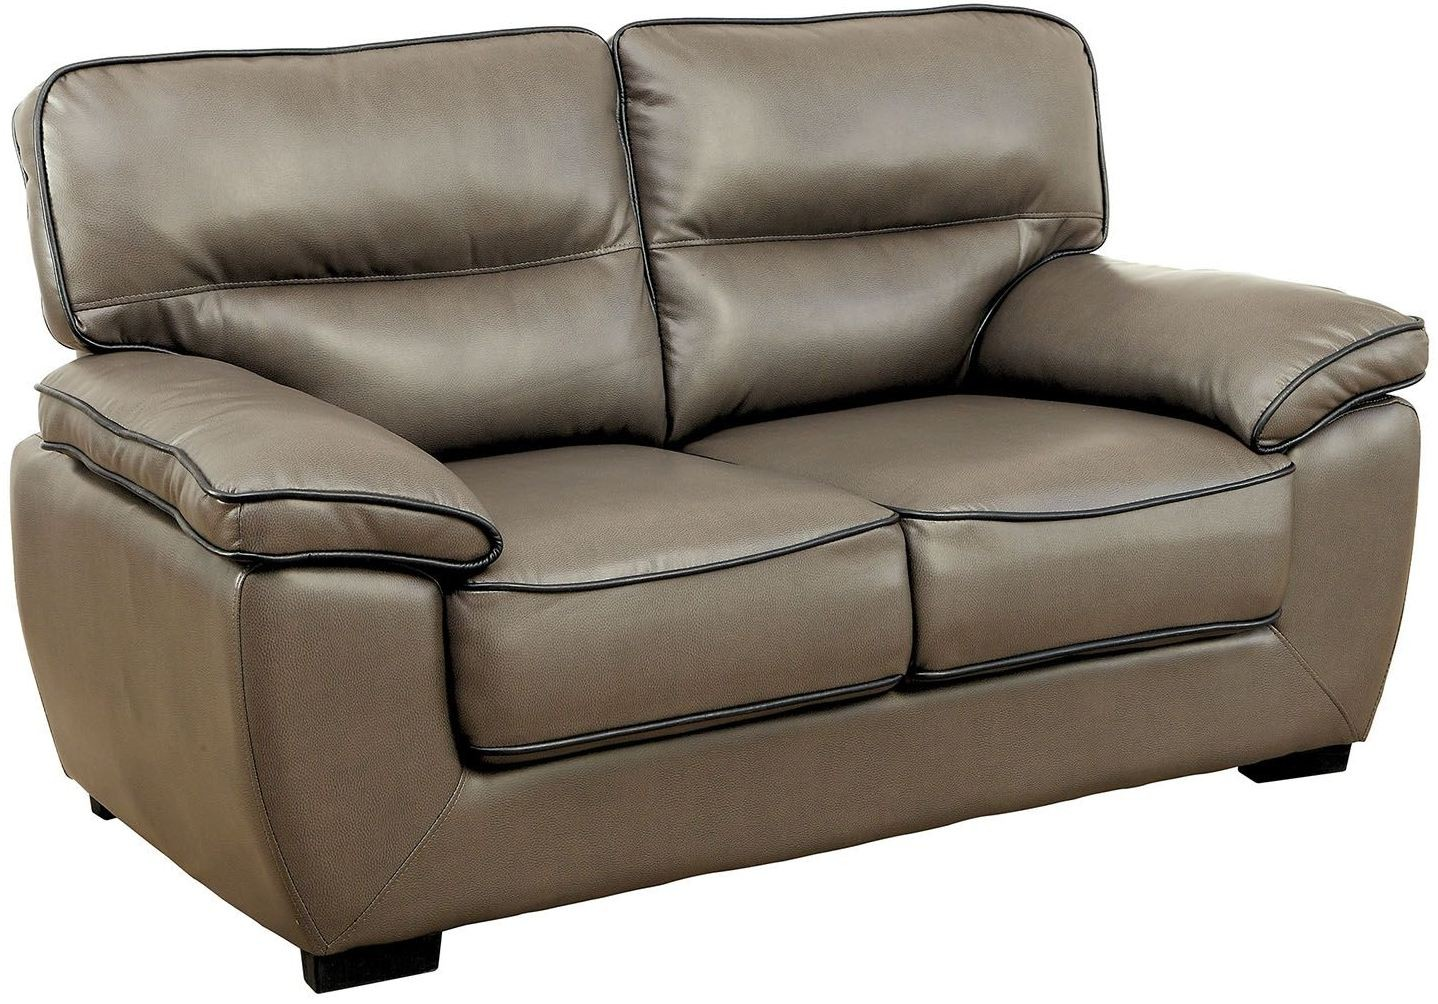 Lennox Gray Shined Faux Leather Loveseat Cm6126 L